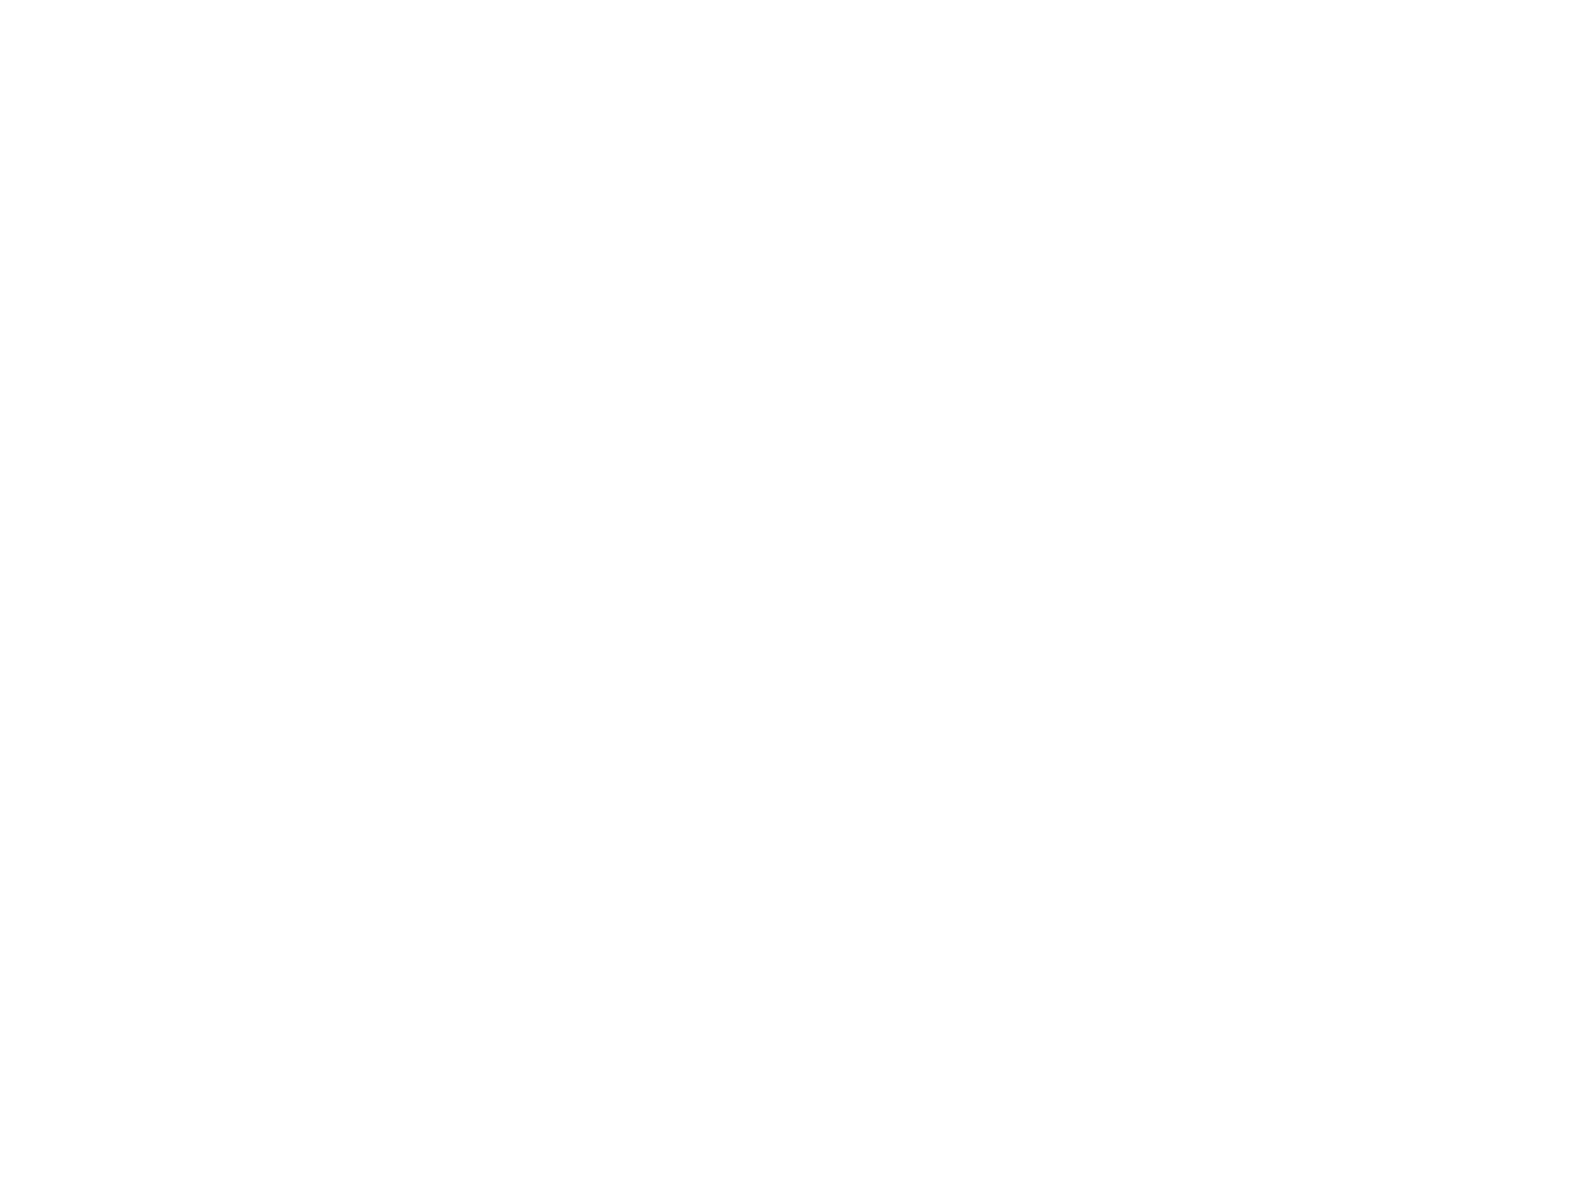 NORMANDIE-BREEDING-LOGO